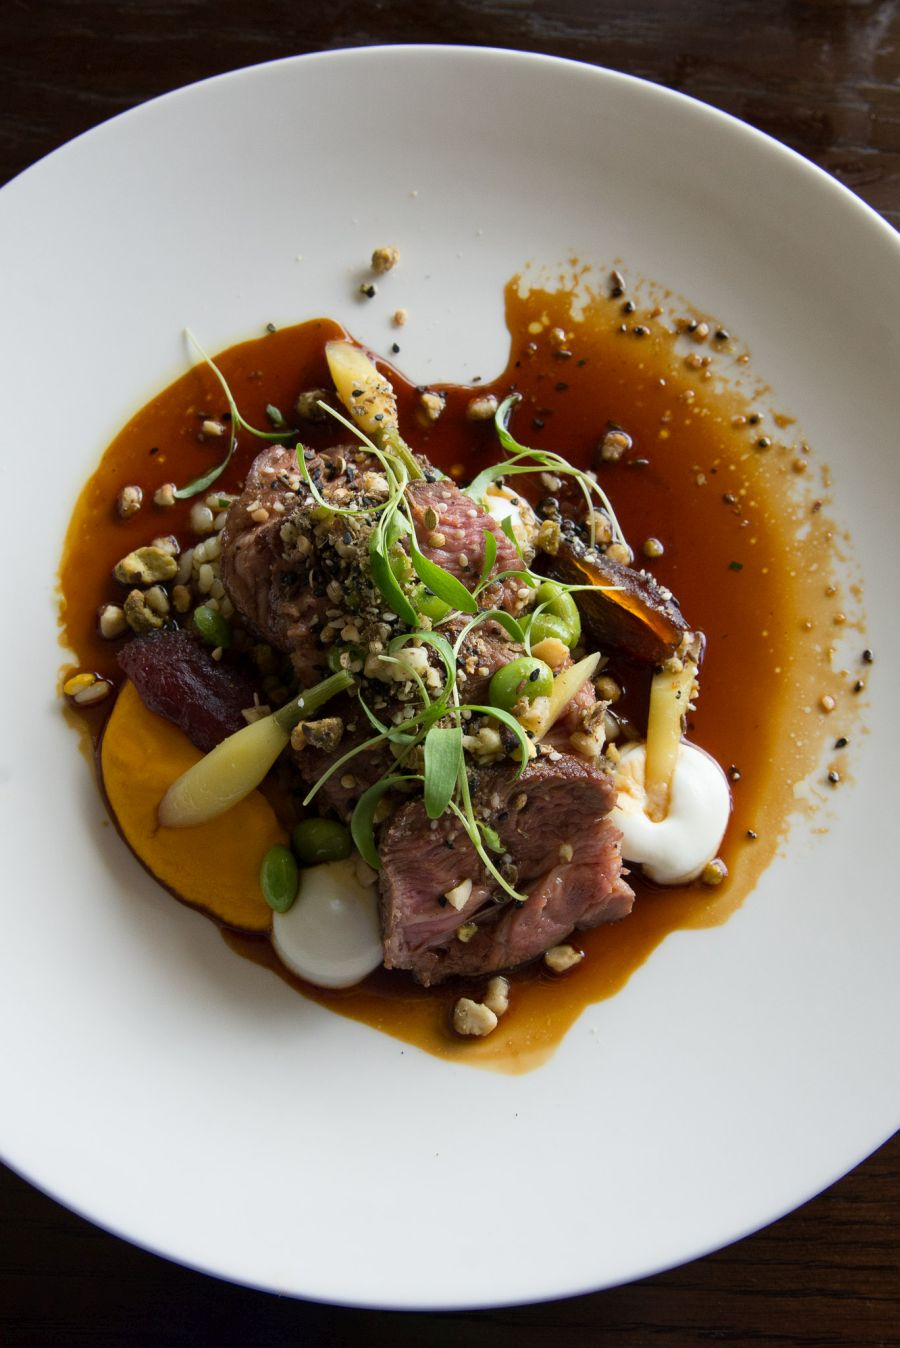 Southland lamb with carrots, date, wheat and sheep's yoghurt (NZ$45)